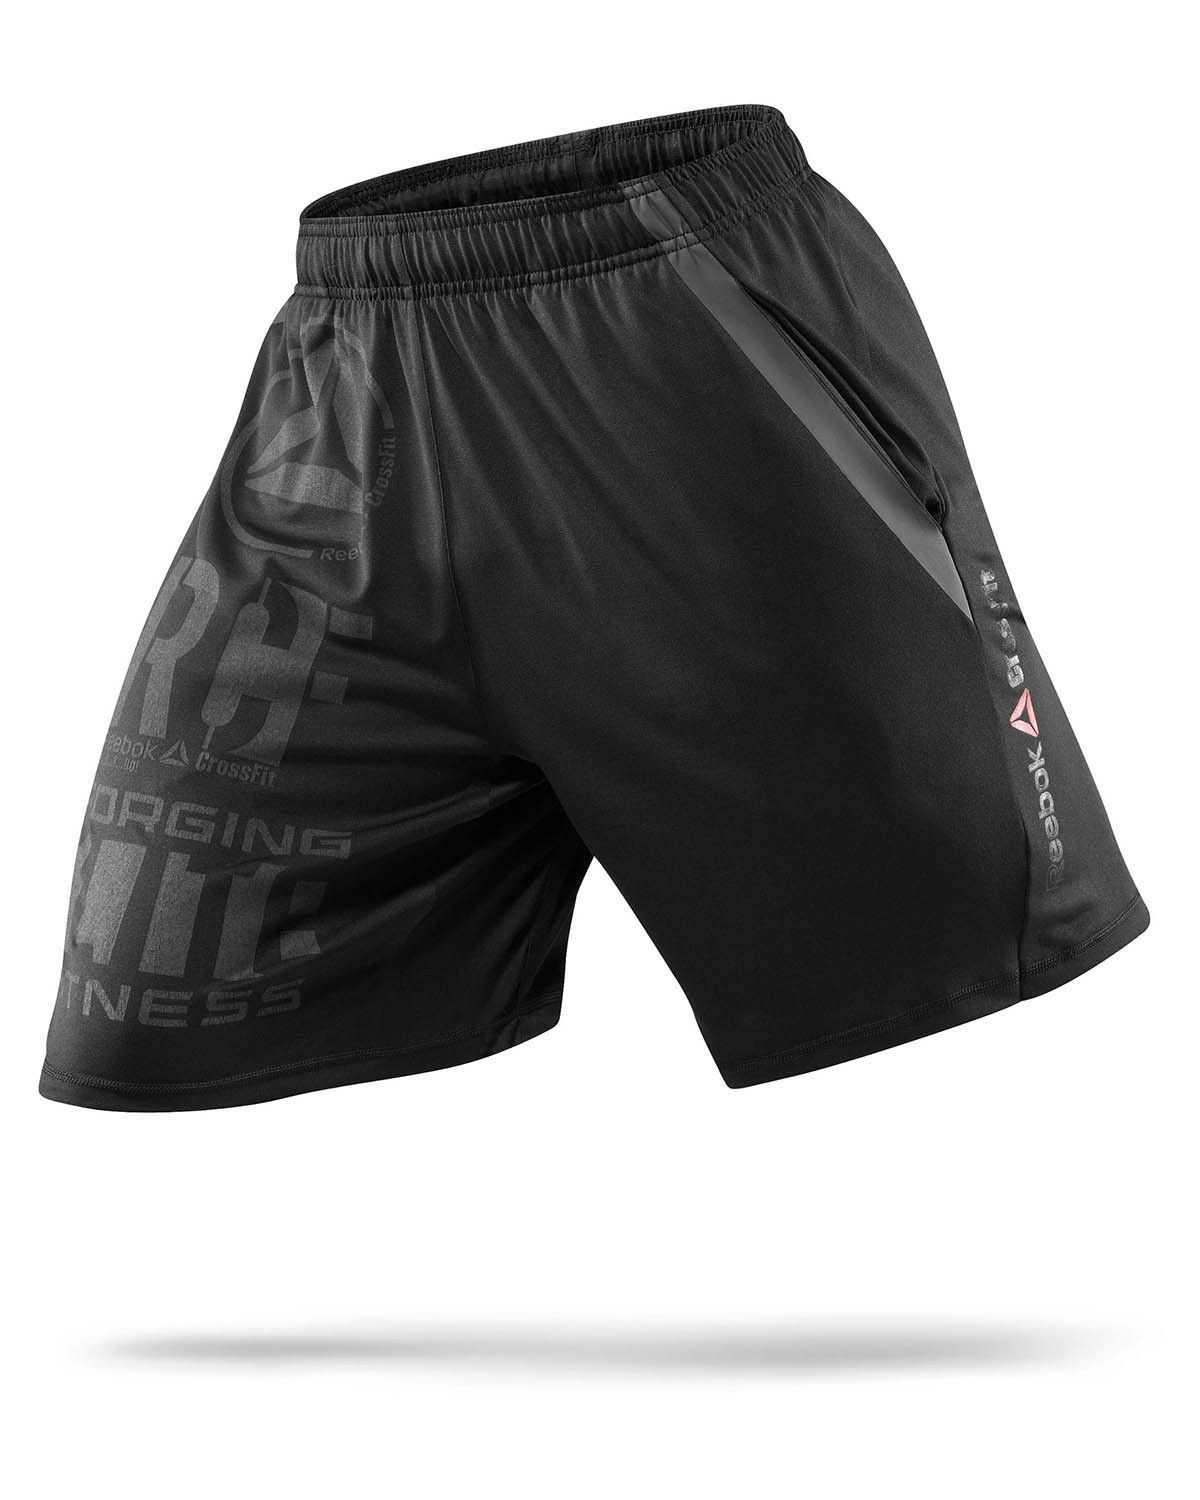 CrossFit HQ Store- Forging Elite Fitness Knit Short - Pants \ Shorts